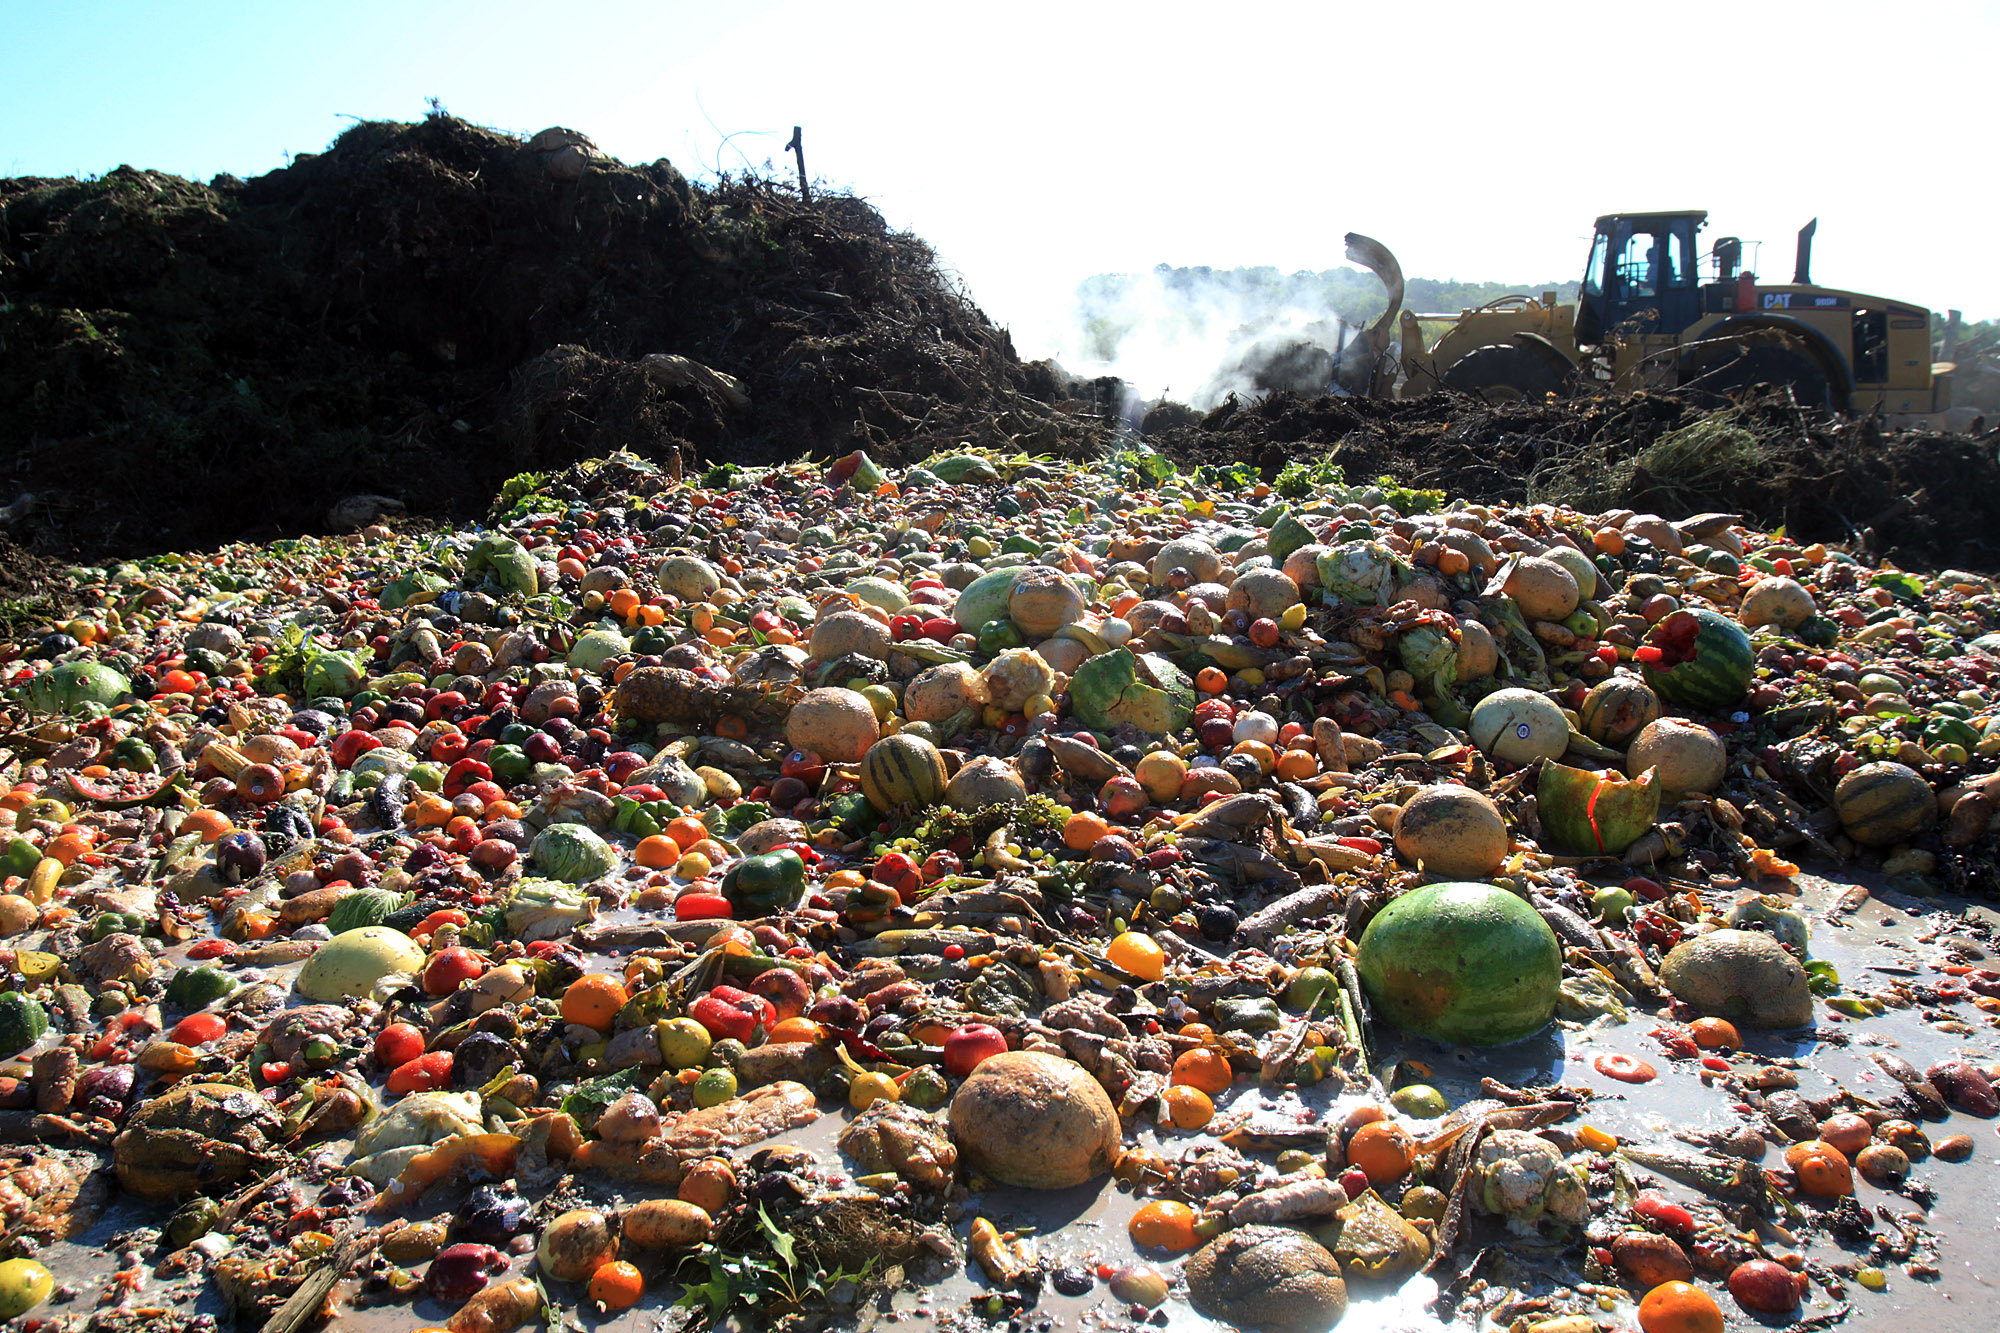 Food Waste In The UK Amounts To 10.3 Billion Tons In 2020